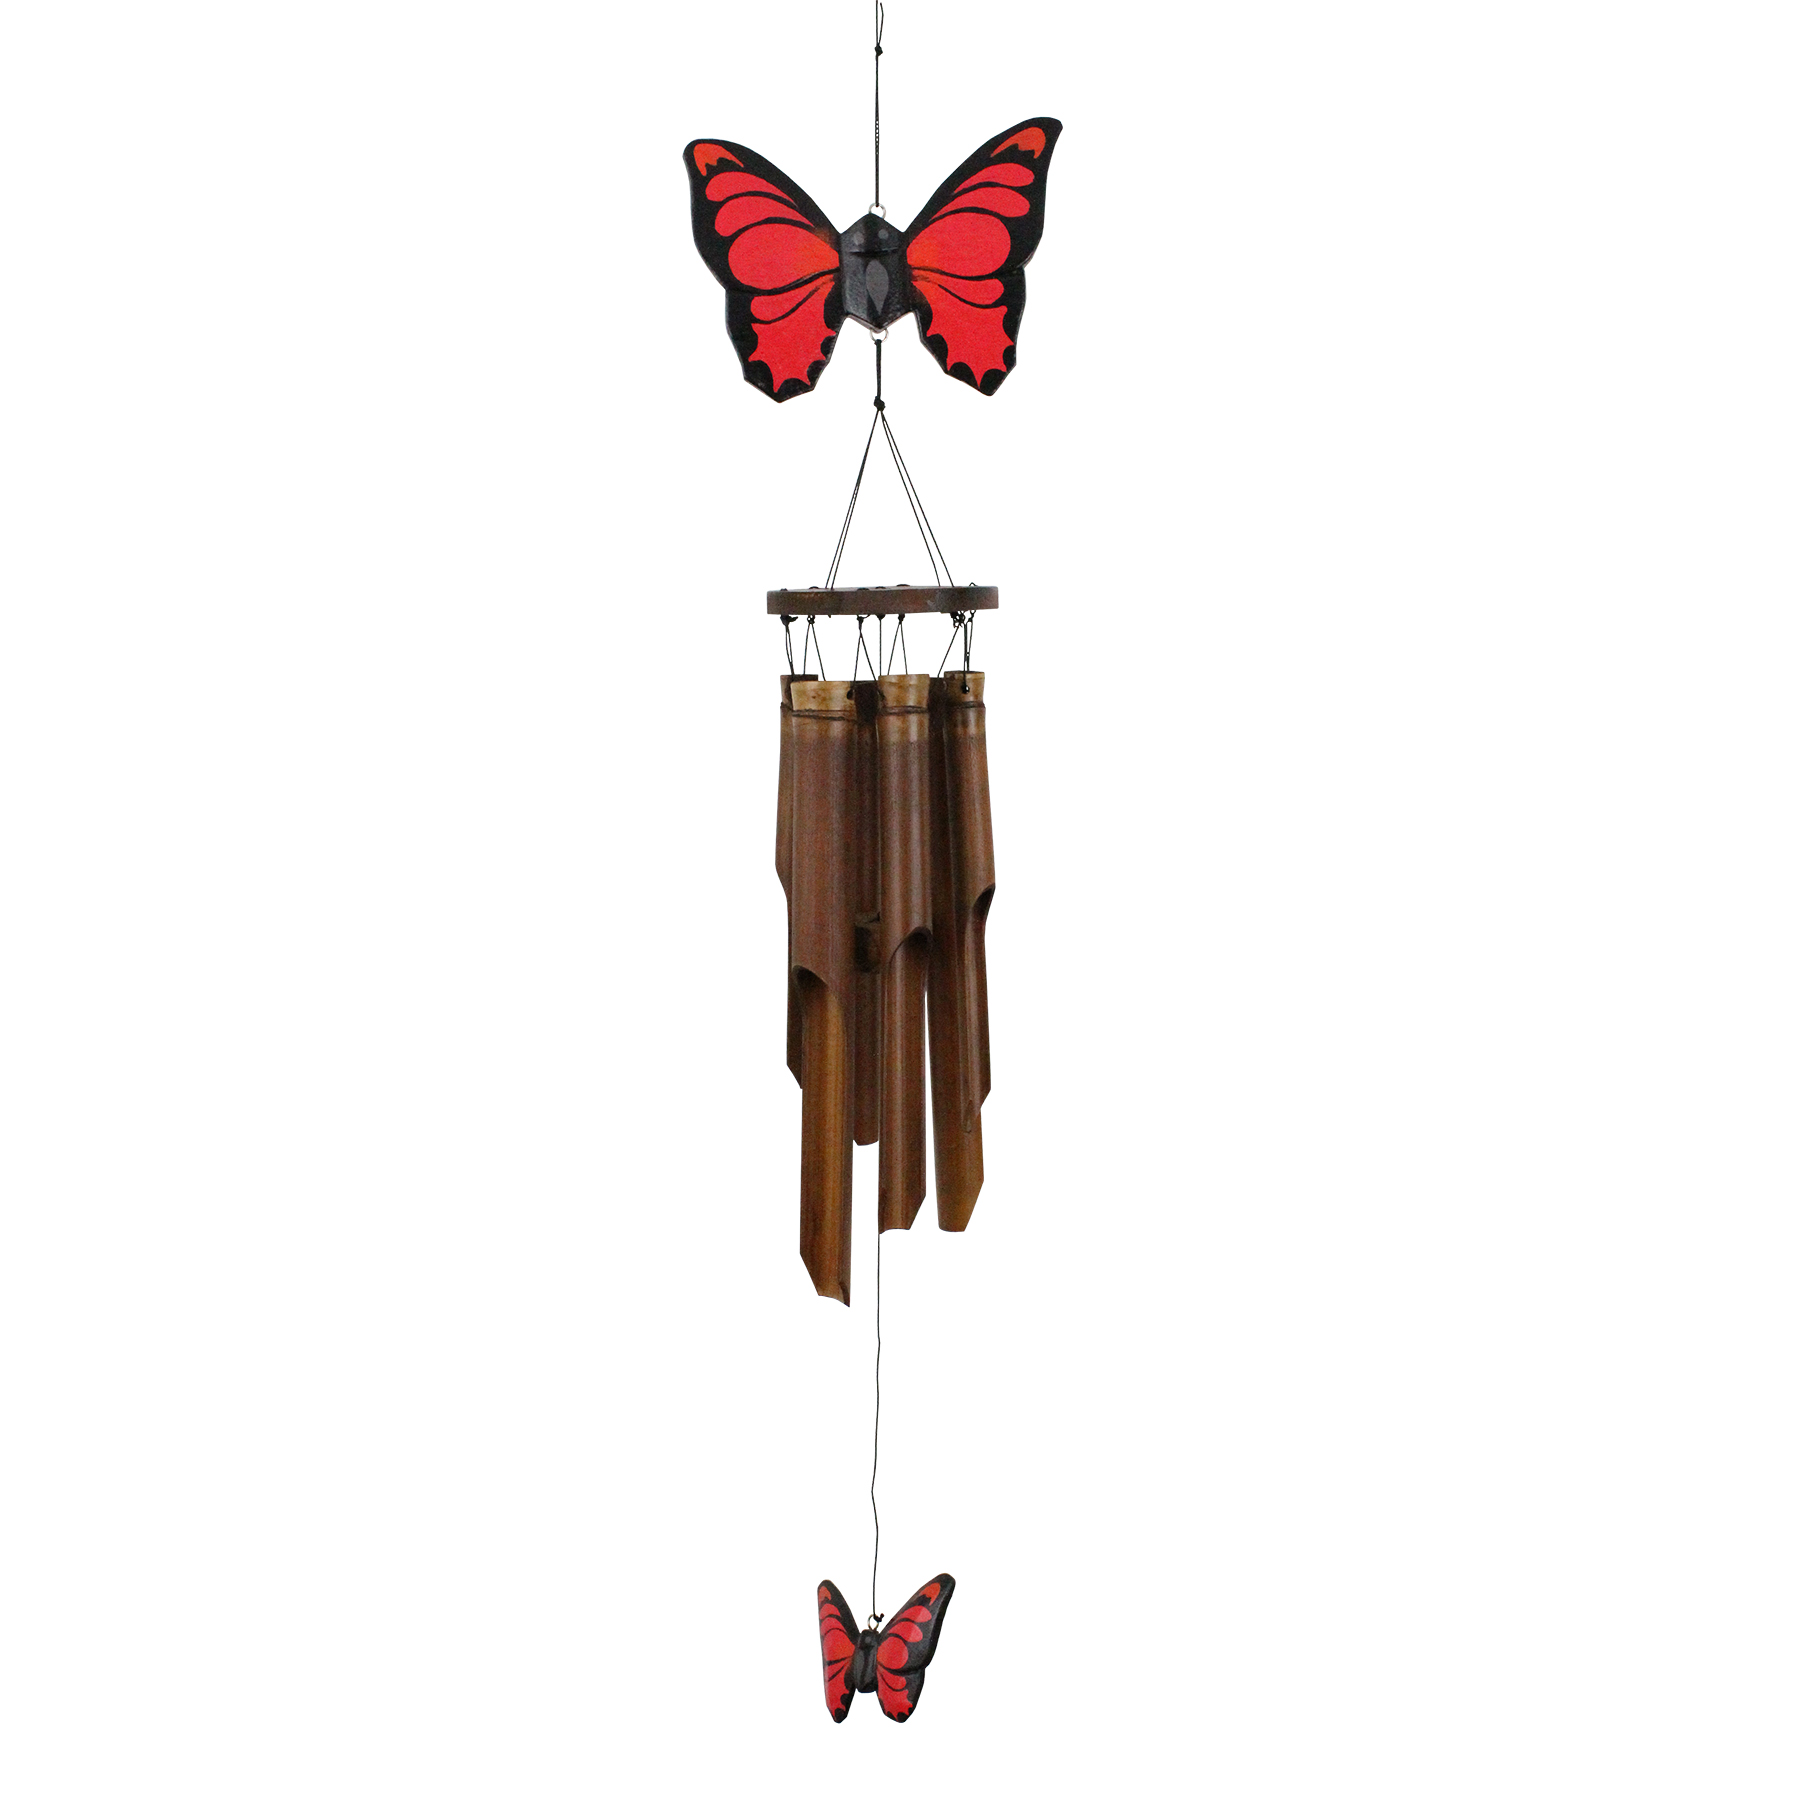 186 - Red Butterfly Bamboo Wind Chime